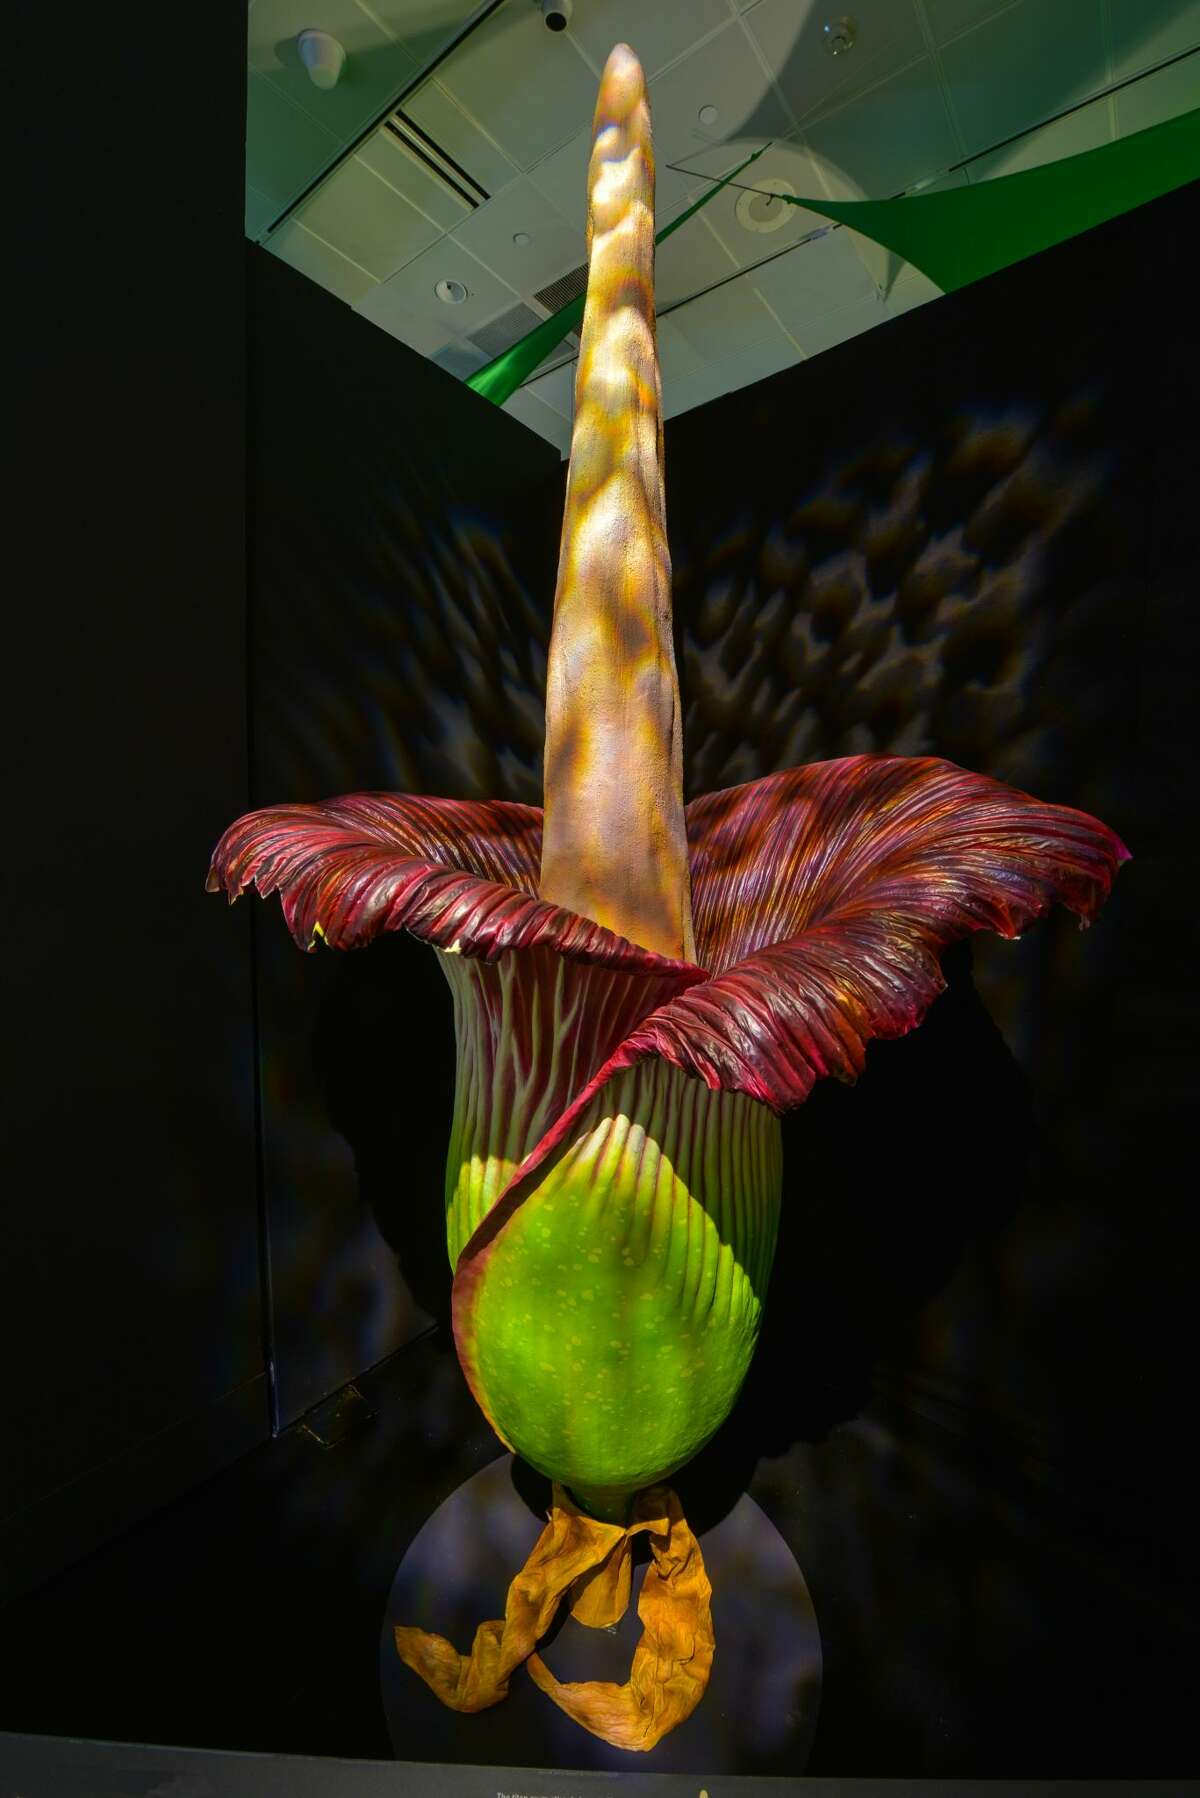 Here's your chance to smell the Titan Arum plant or